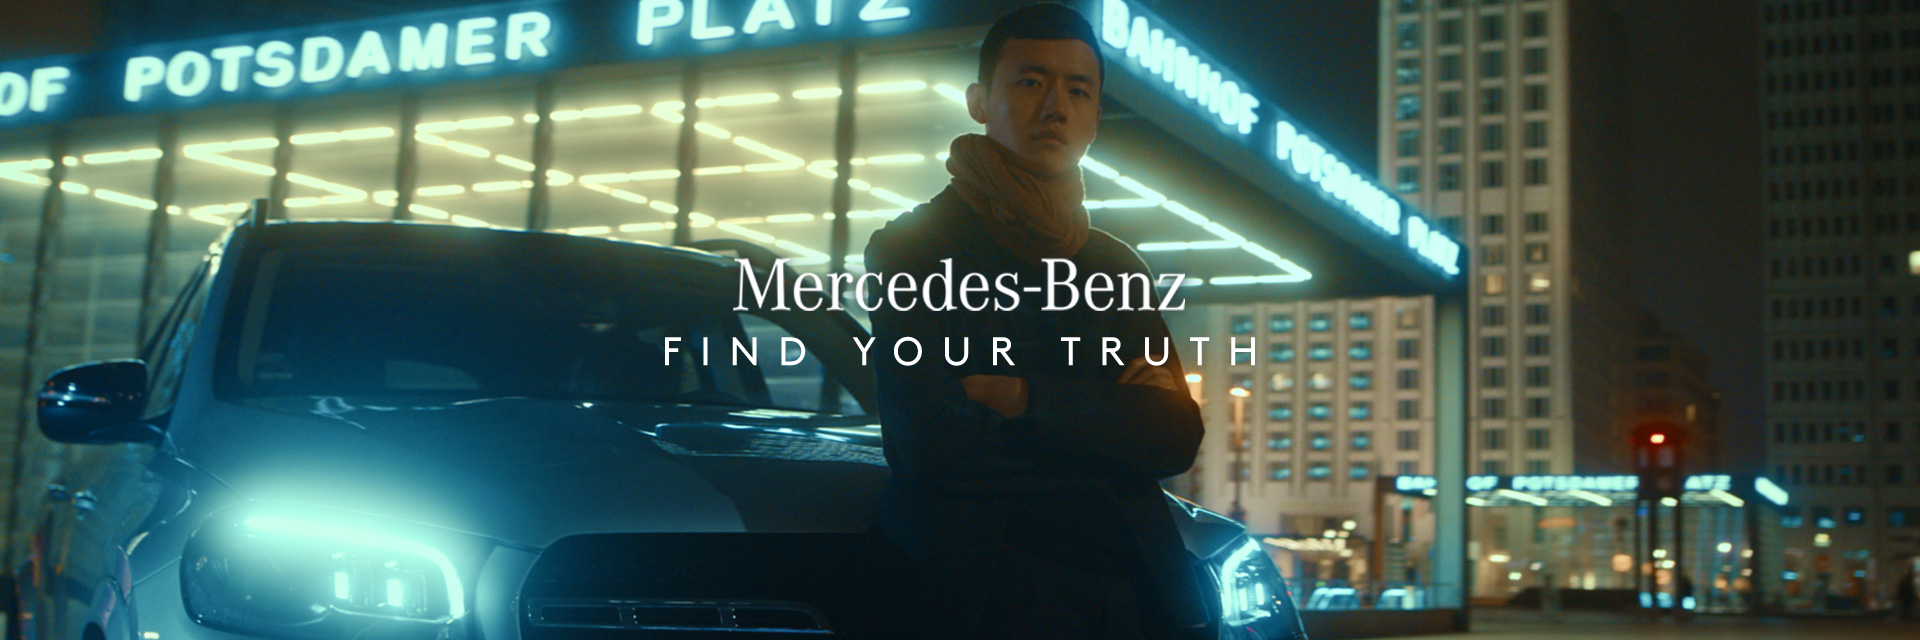 FIND YOUR TRUTH – MERCEDES BENZ